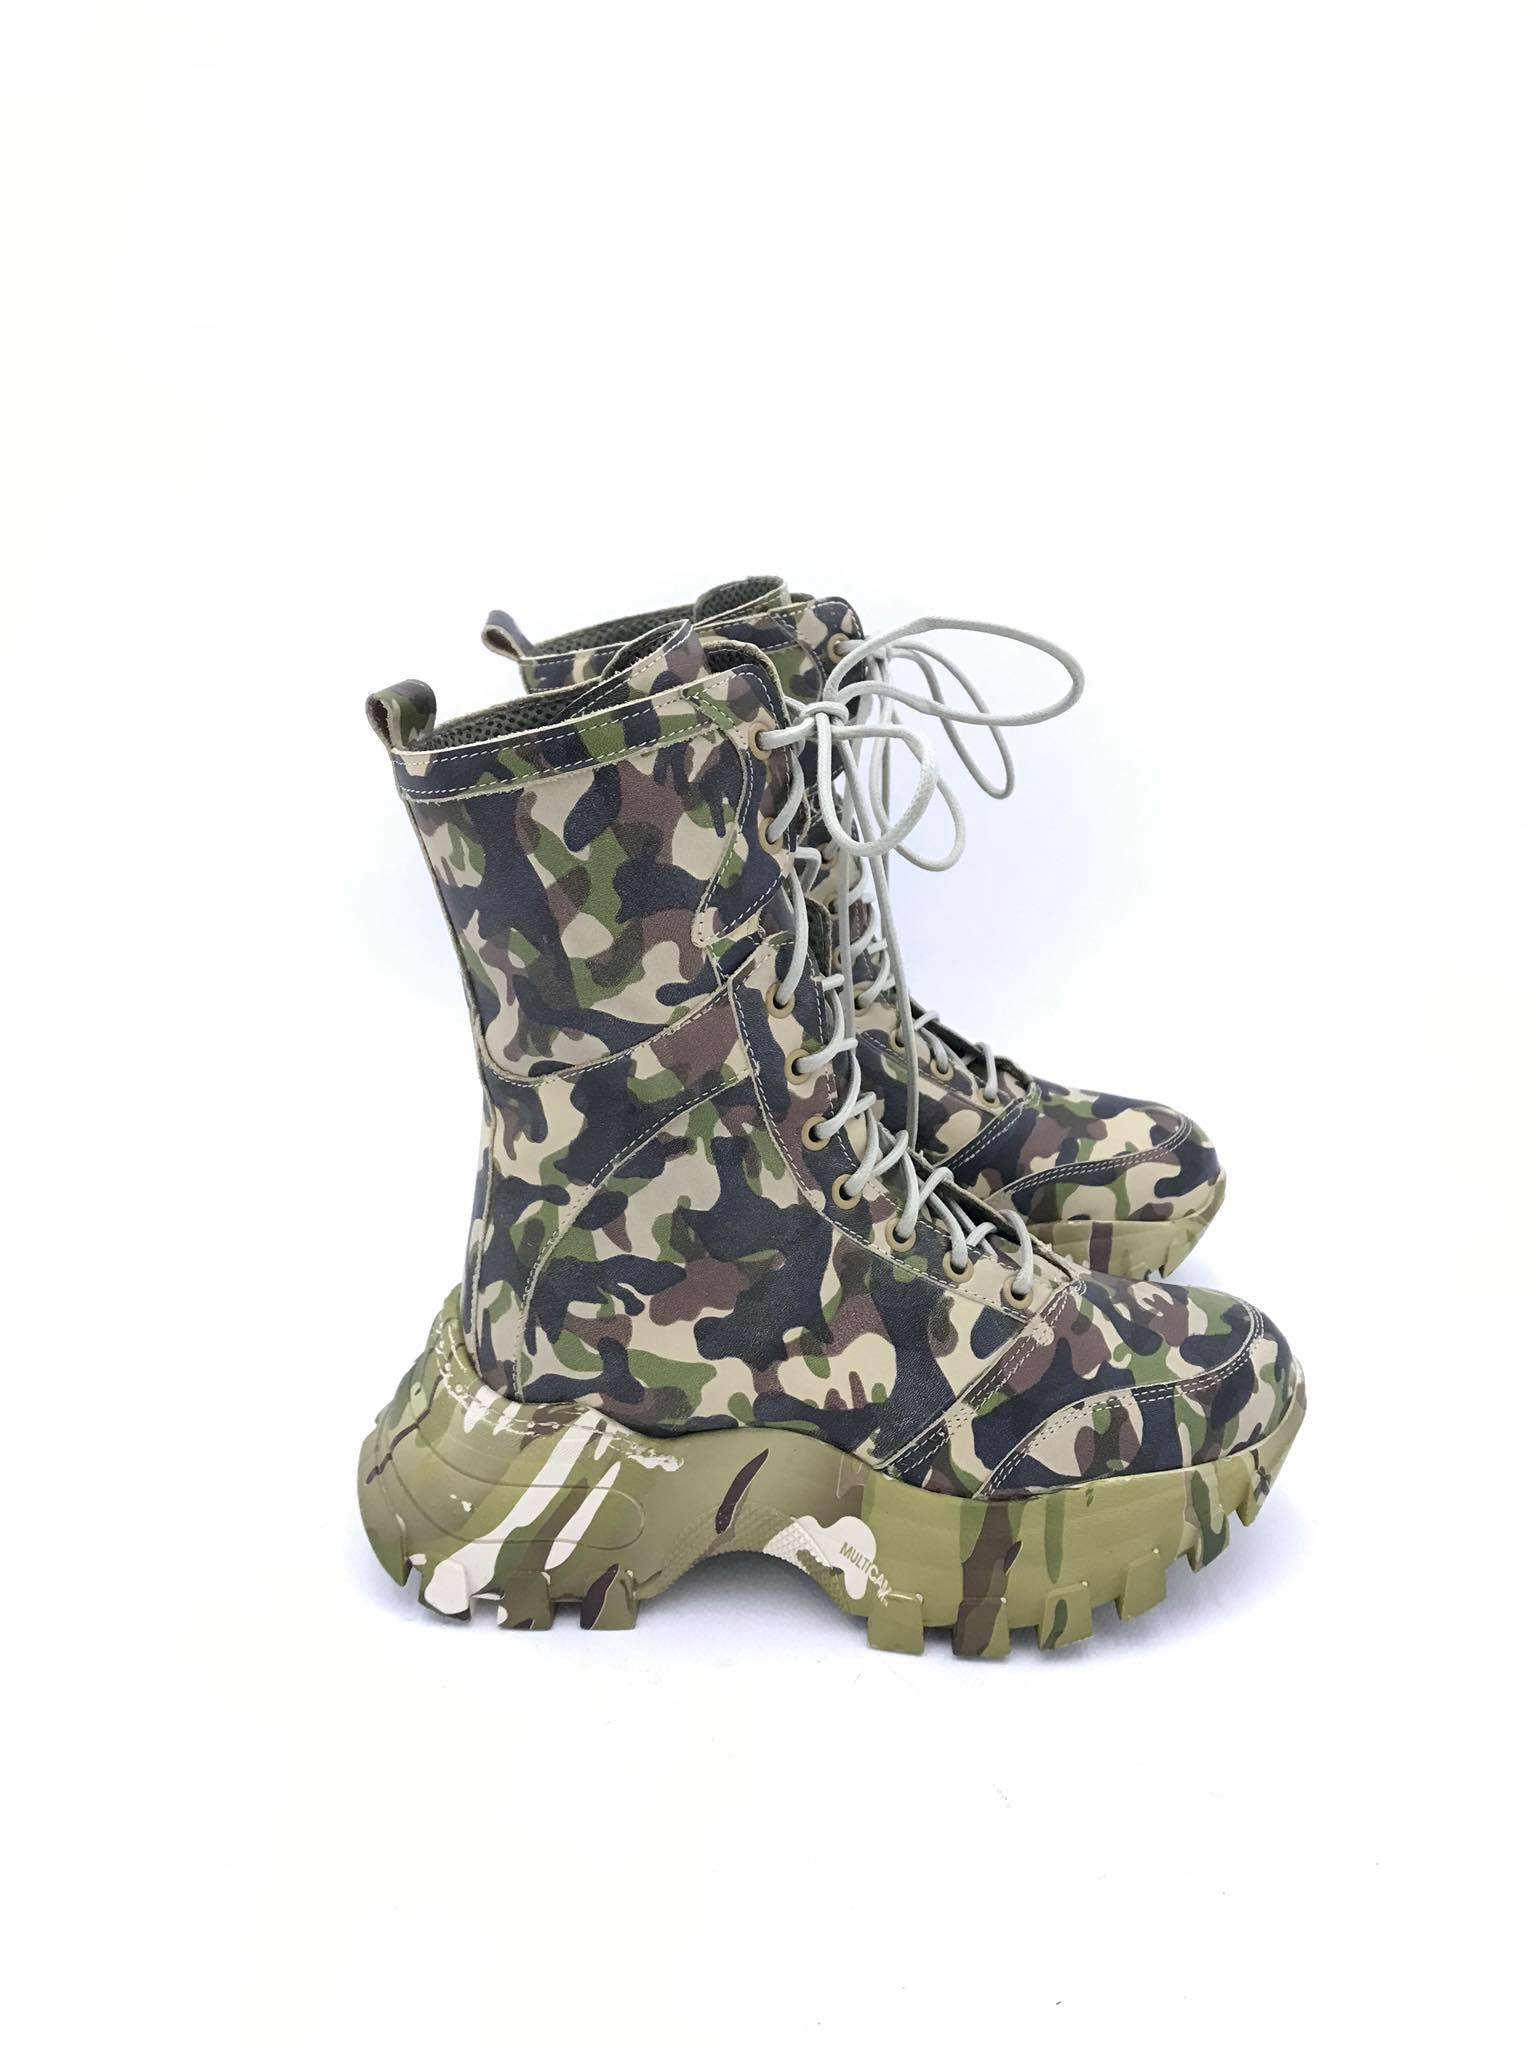 JAMMERS LONDON NUVOLA4 MILITARE